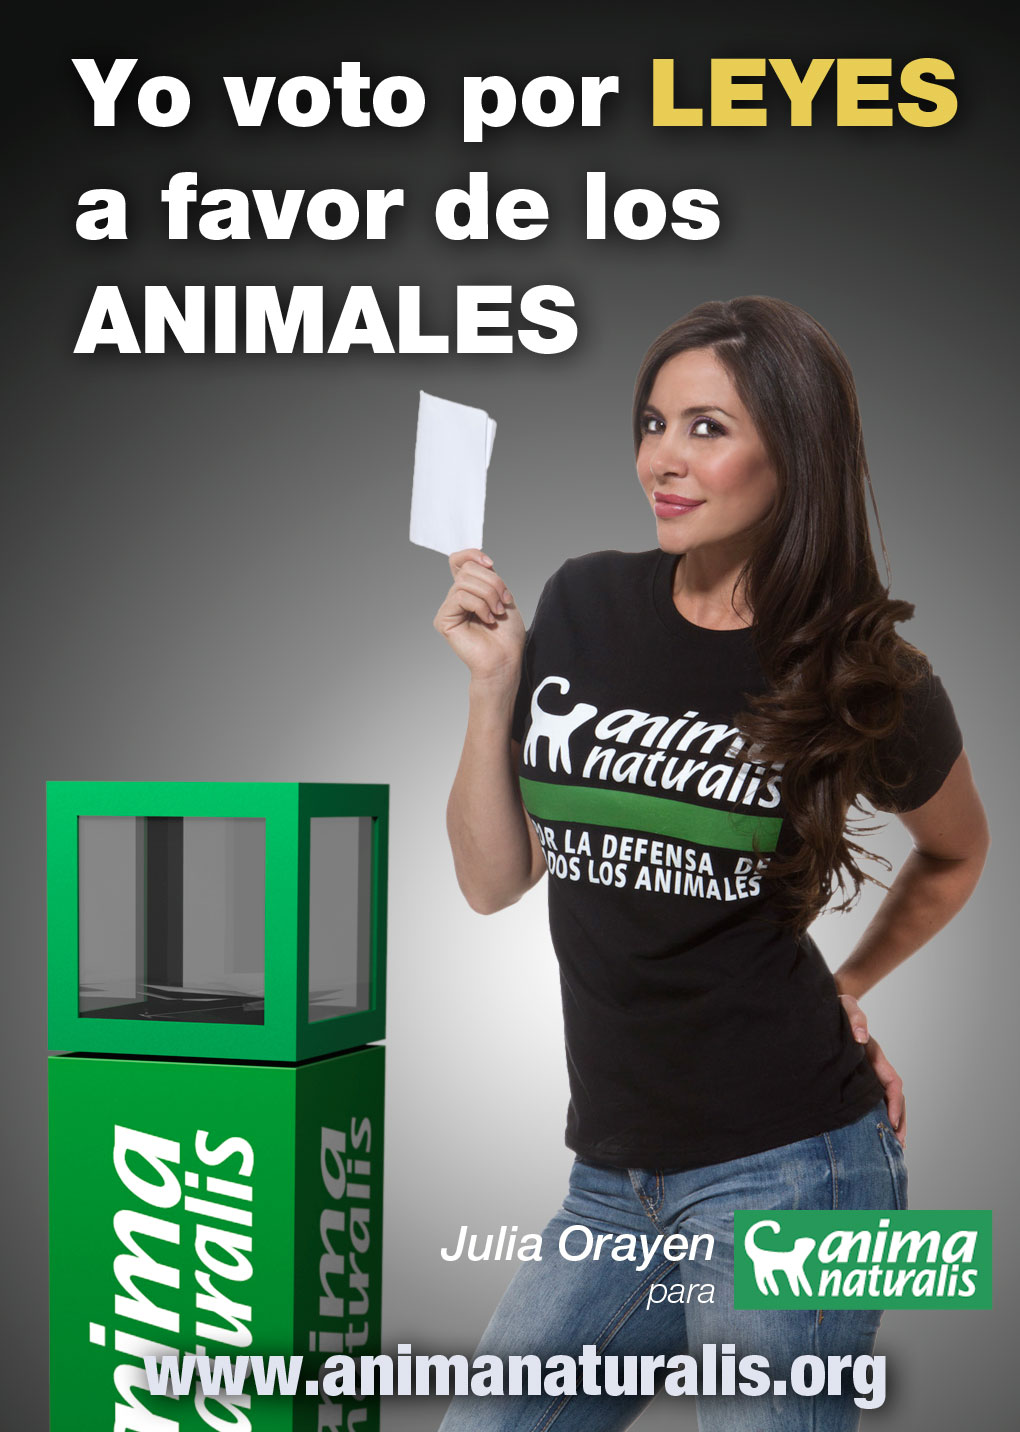 ¡Julia Orayen y AnimaNaturalis te invitan a votar a favor de los animales!